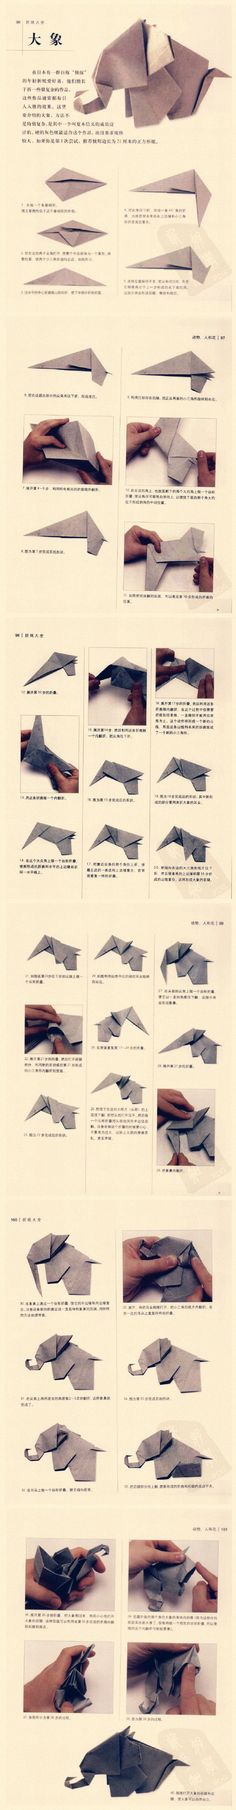 elephant origami  Now I need to learn me some Chinese!  http://www.duitang.com/album/250202/?from=detail_right